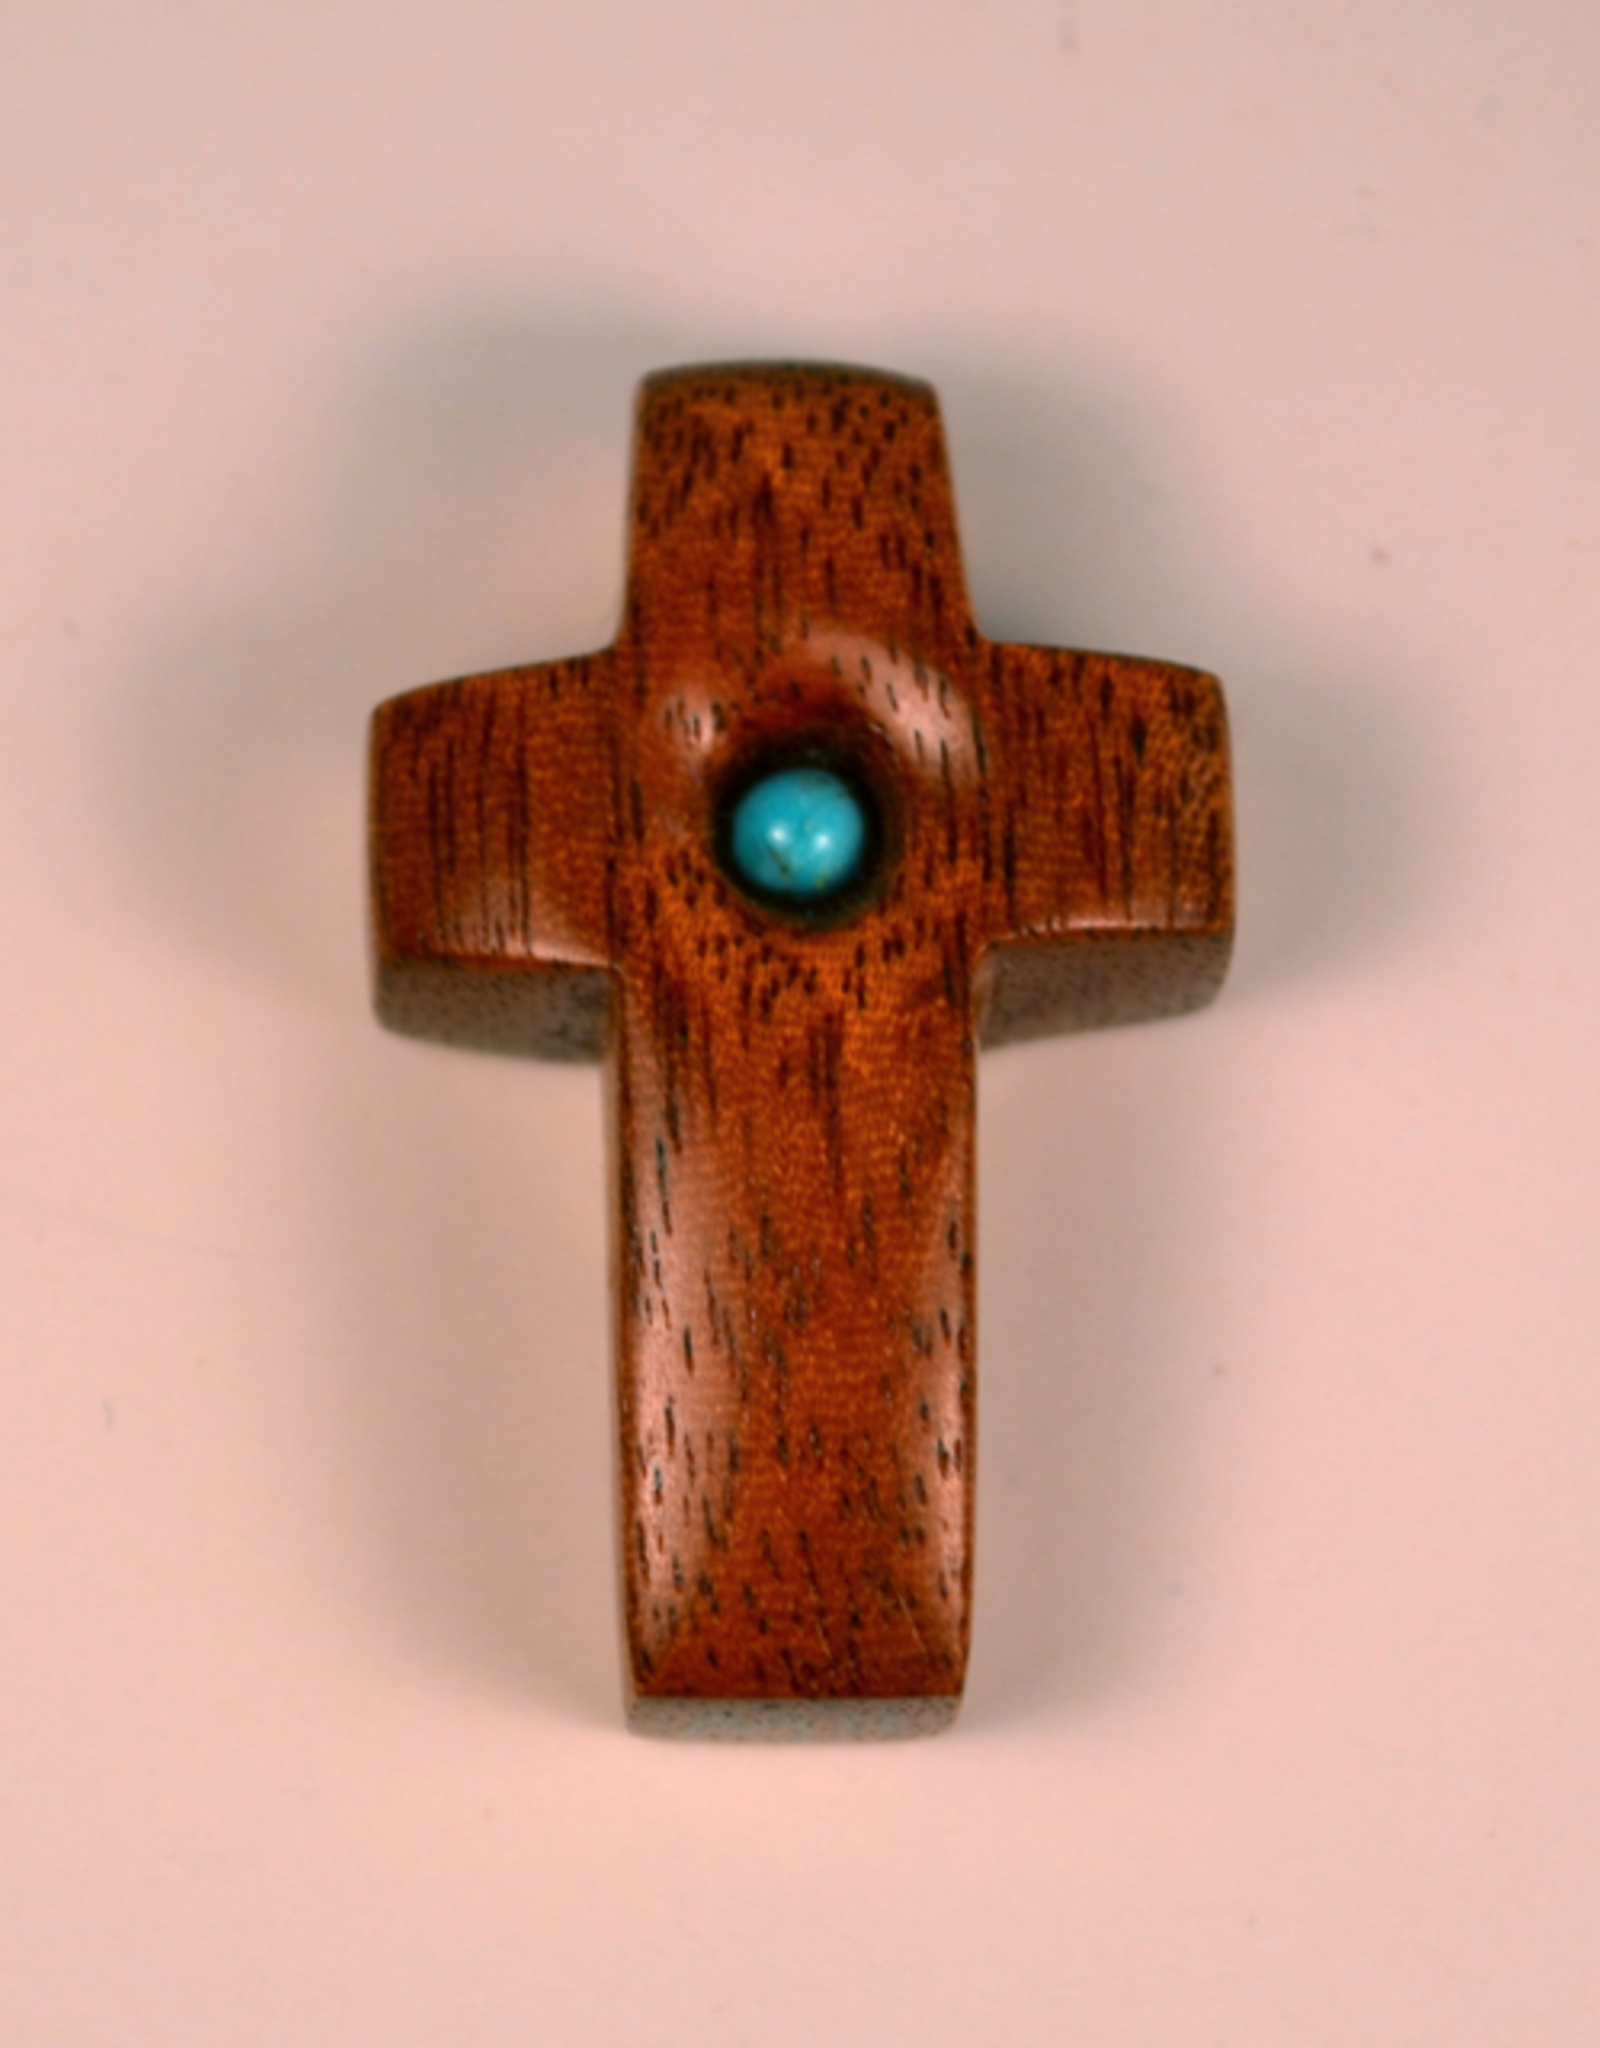 "Merry Crosses 1 1/2"" Merry Hand Crafted Butter Nut Barrel Pocket Cross with Turquoise"